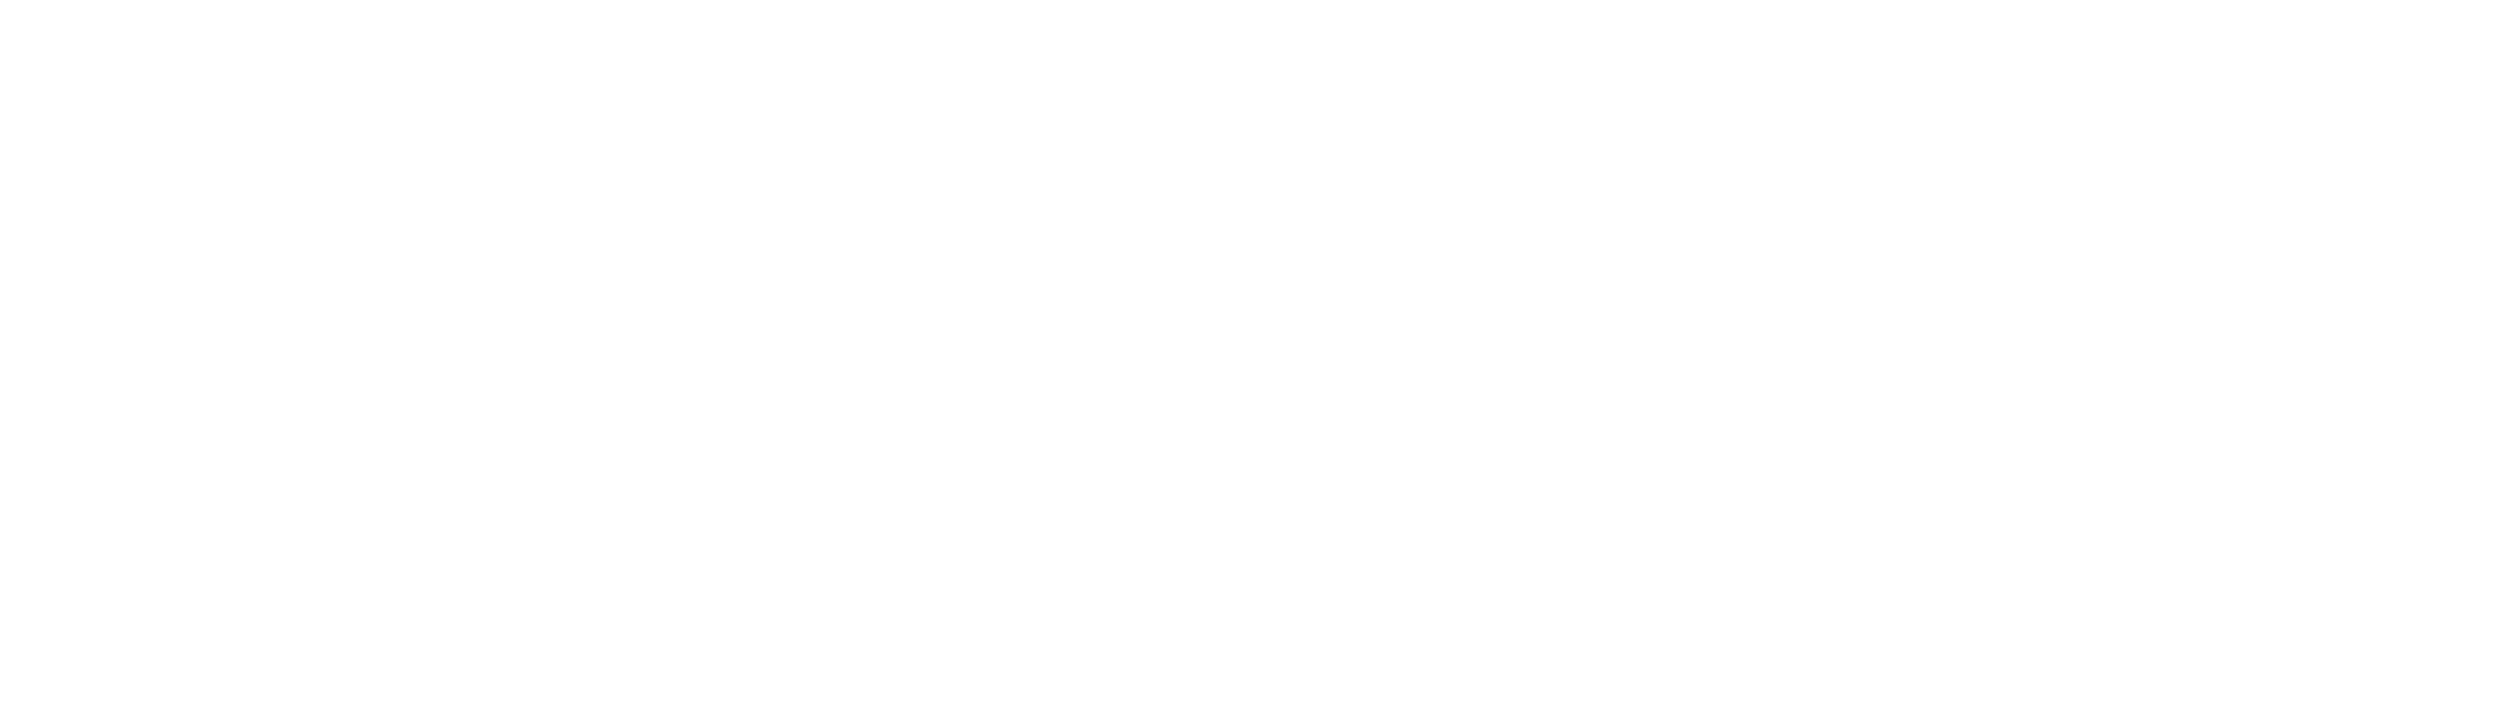 OFFICIALSELECTION-LOSCABOS.png